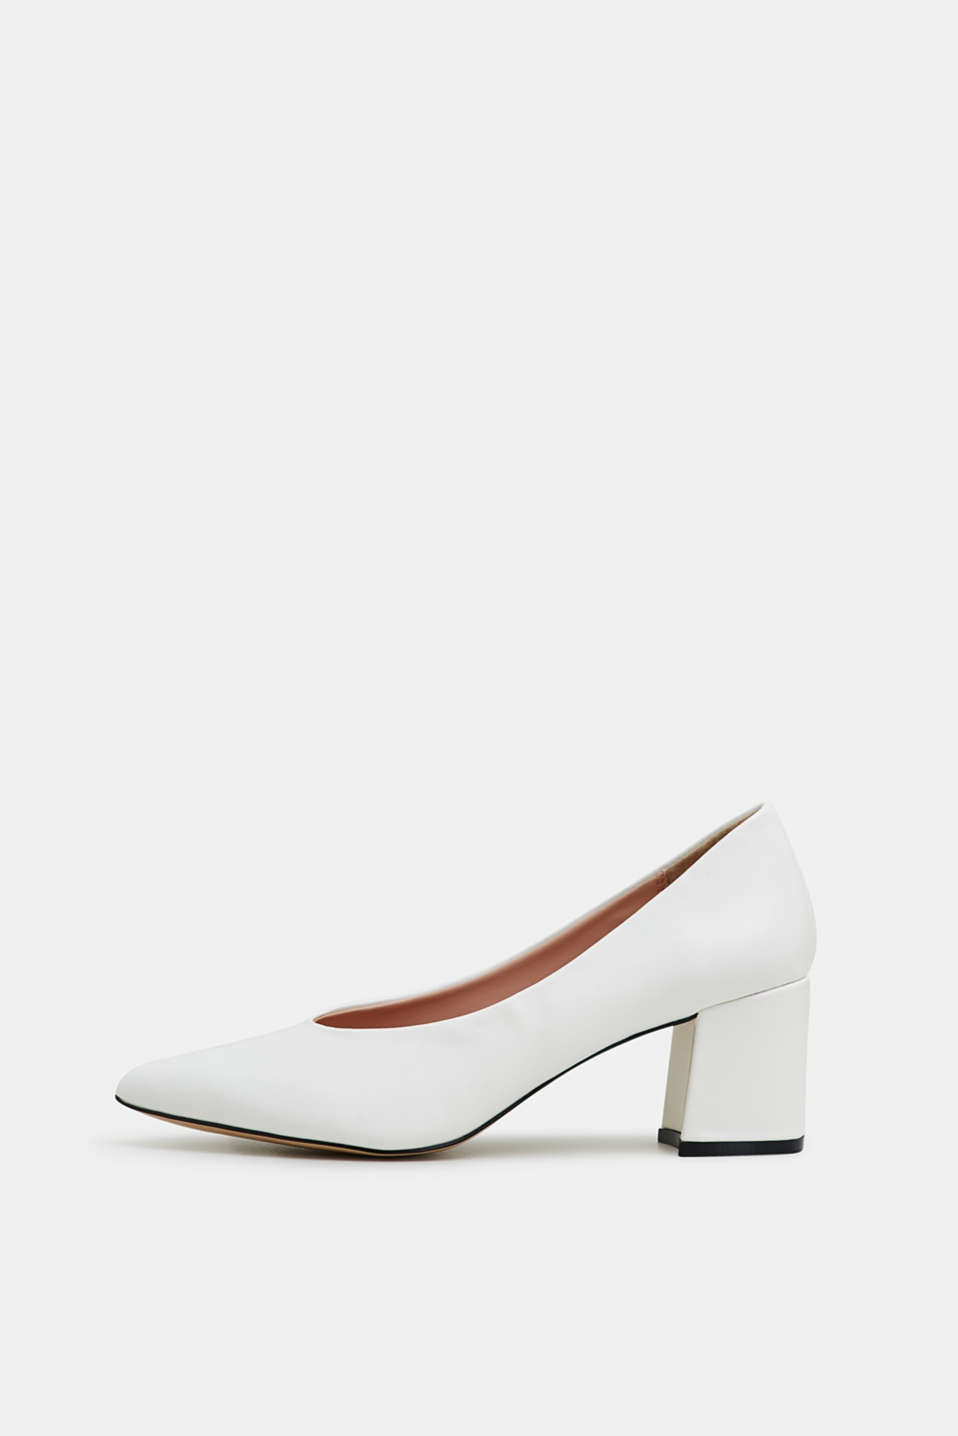 Esprit - Court shoes with a block heel, in faux leather